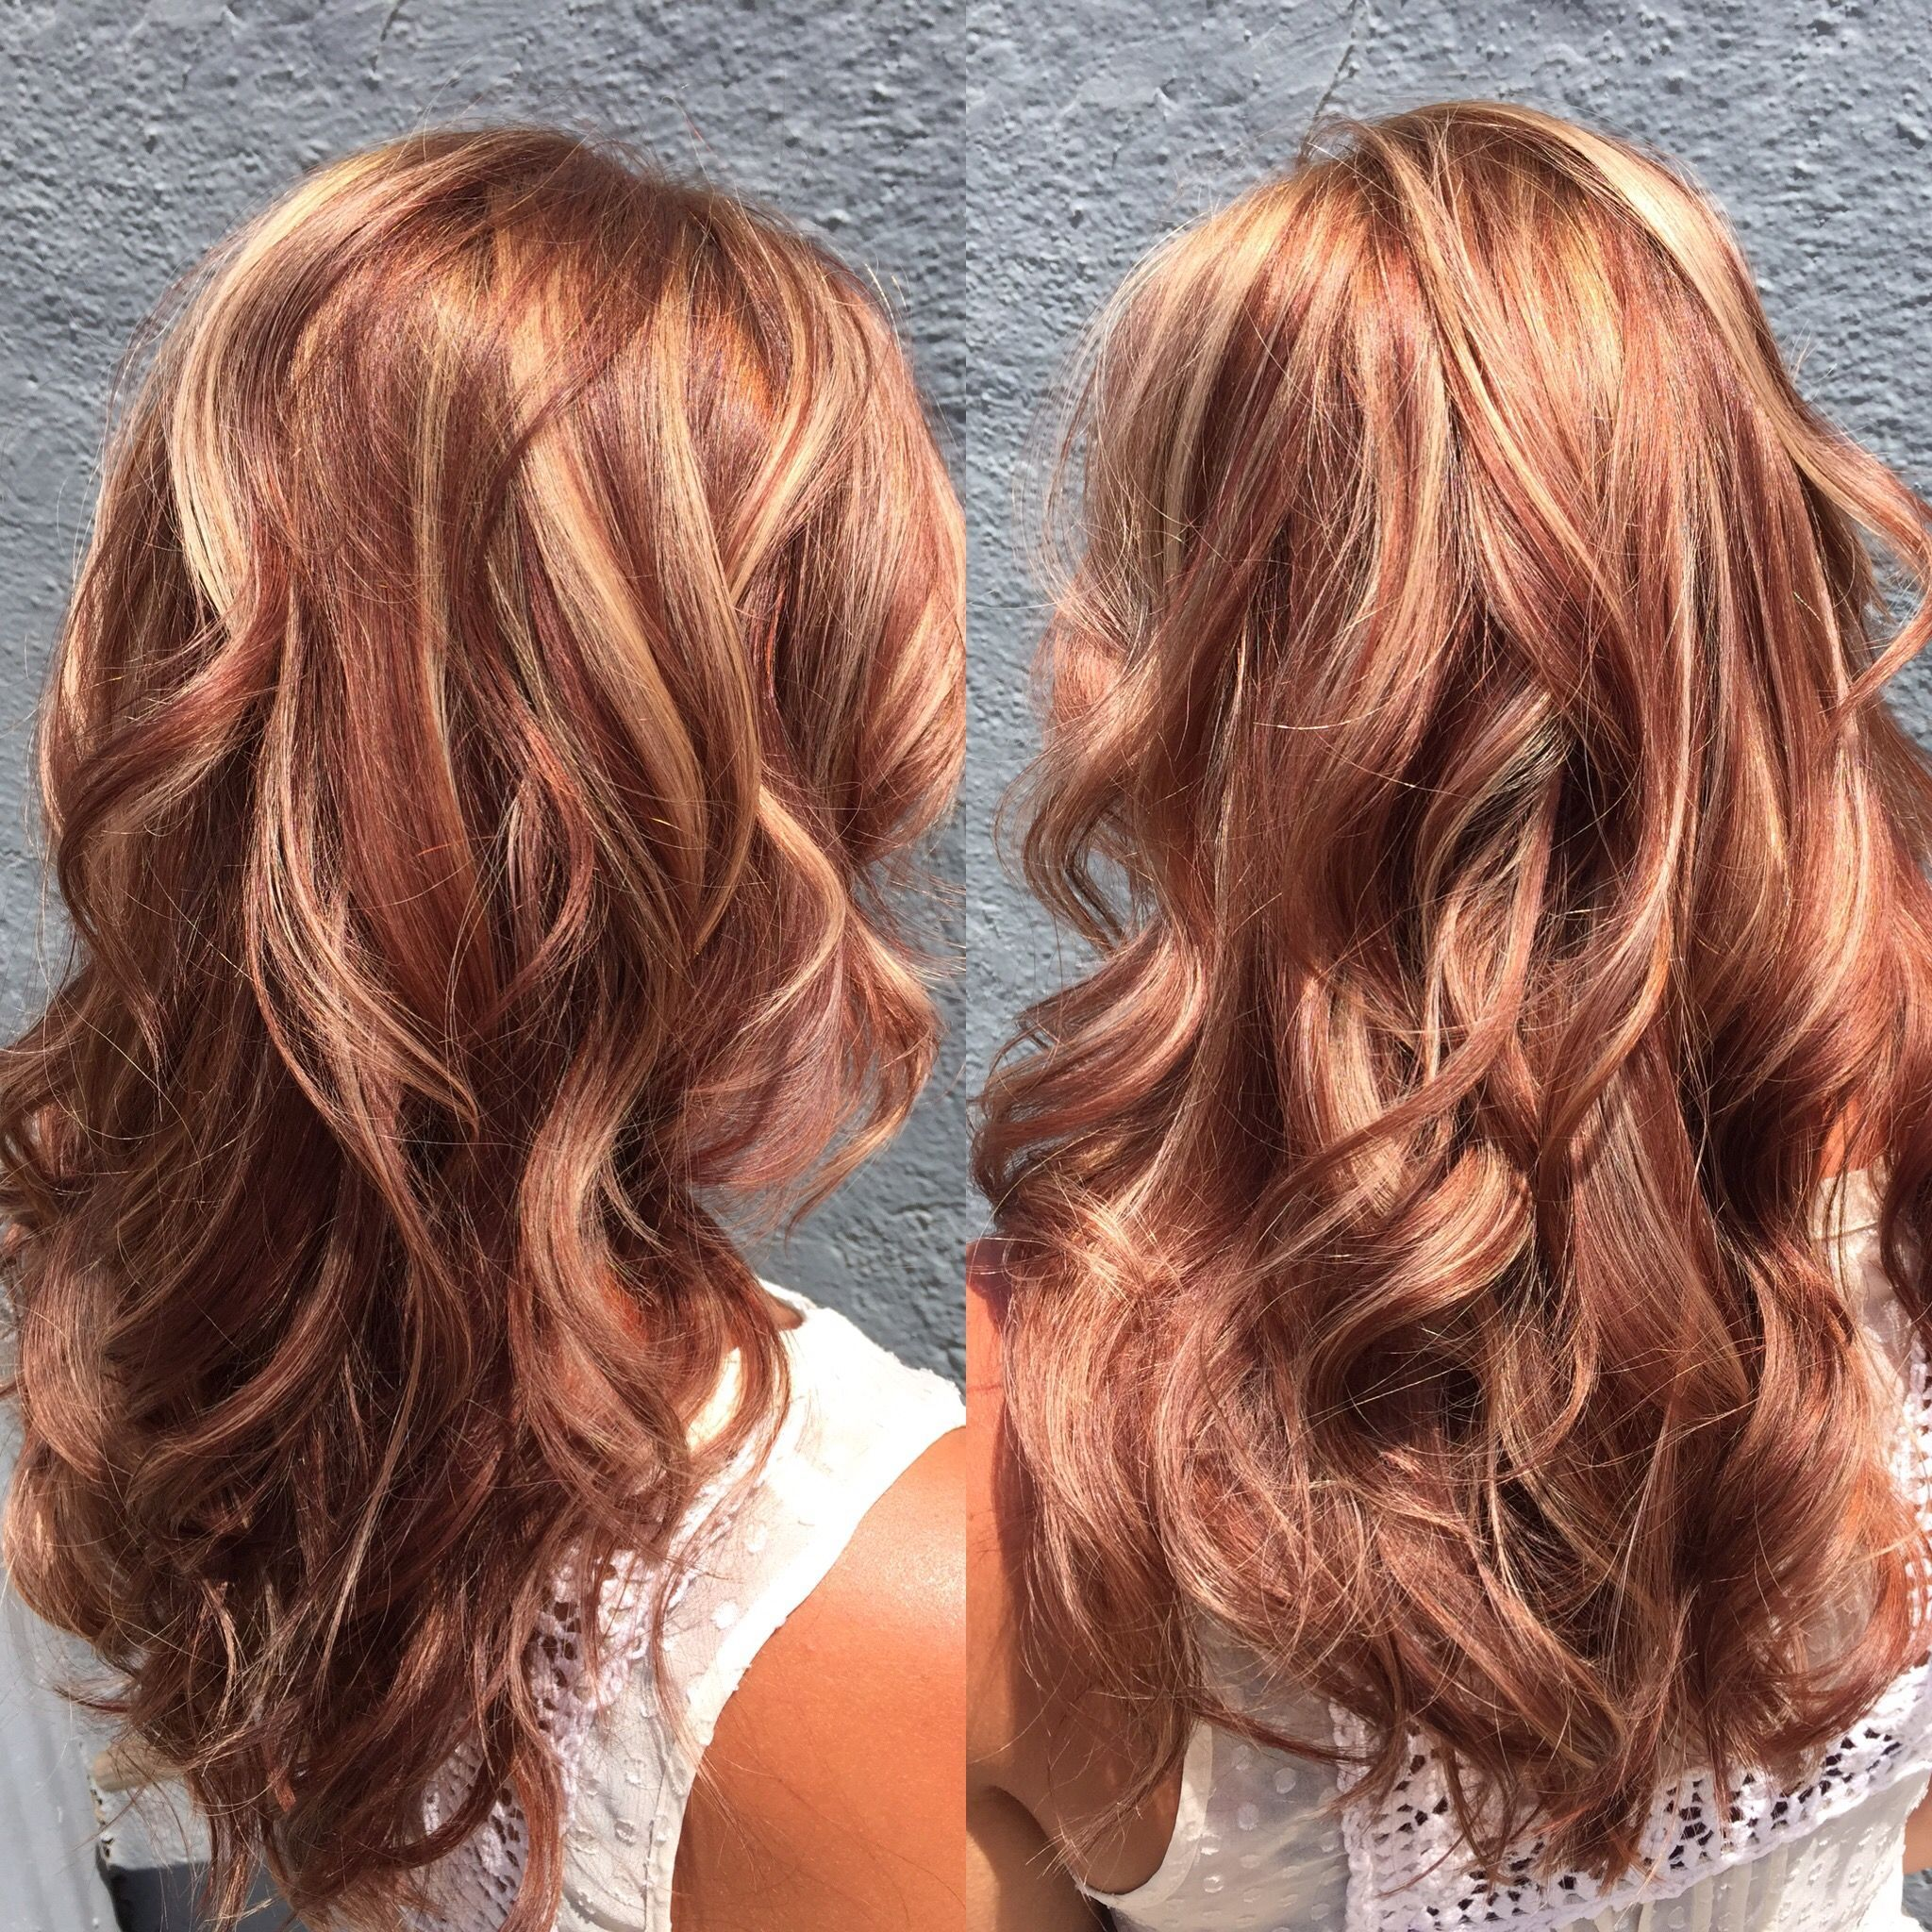 Image Result For Brown Hair With Auburn And Blonde Highlights Hair